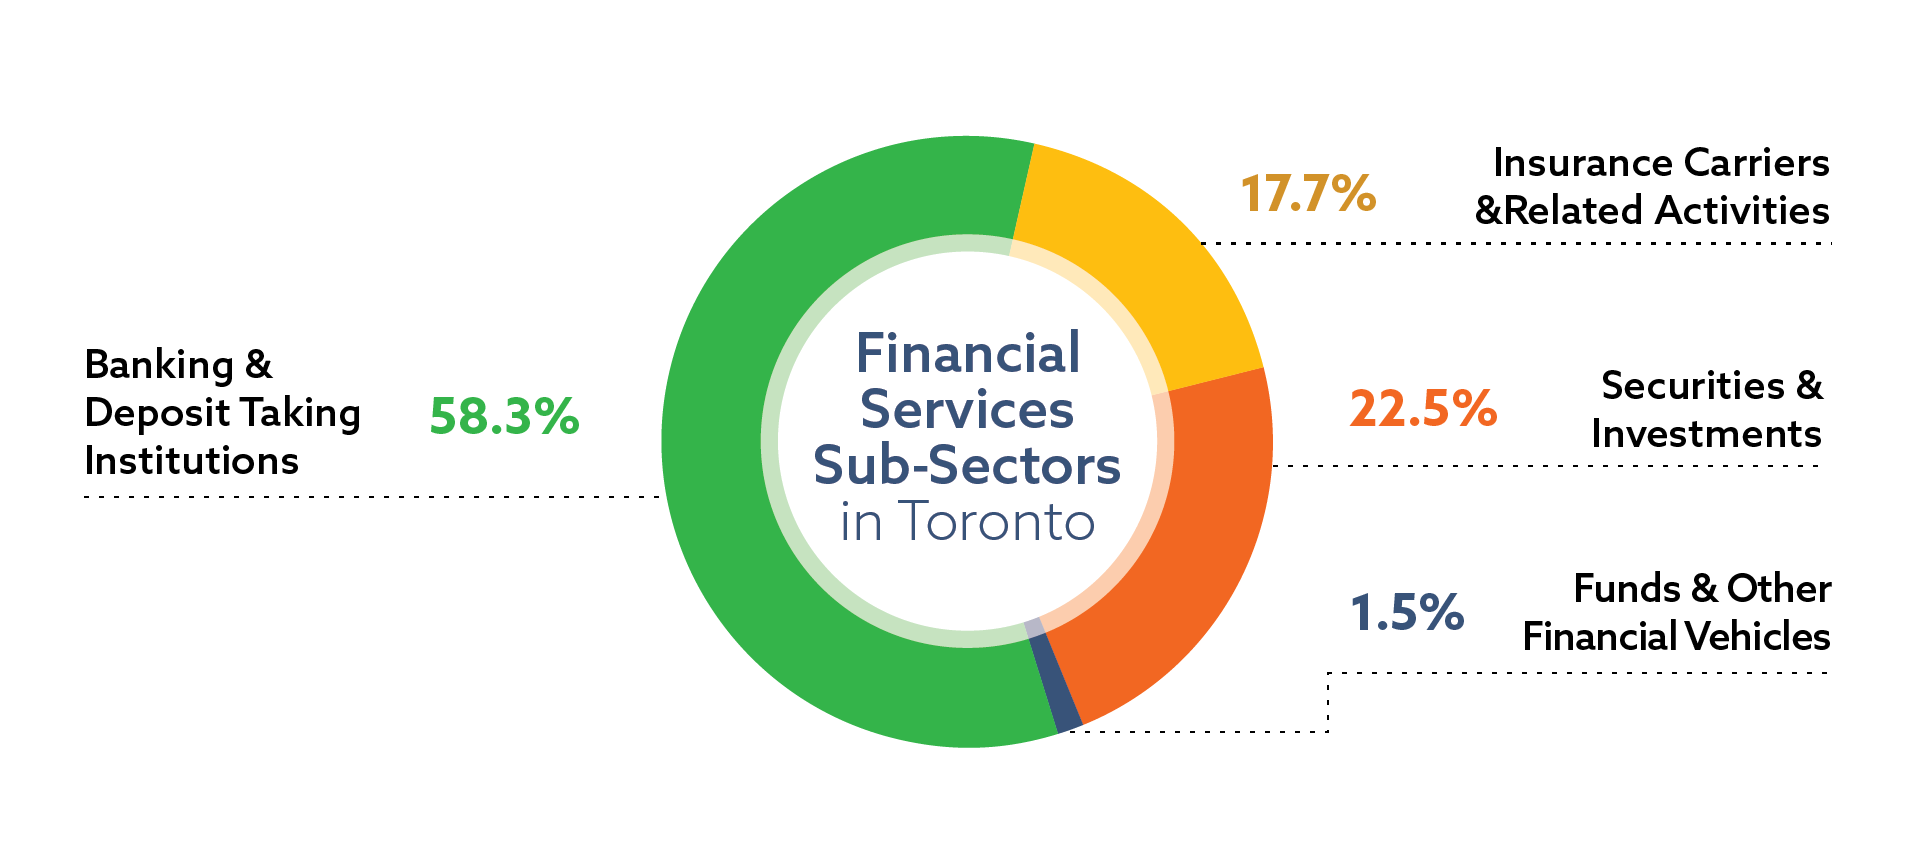 Distribution of jobs in the financial services sector in Toronto by sub-sector: banking and deposit taking institutions 58.3 percent of sector jobs; securities and investments 22.5 percent of sector jobs; insurance carriers and related activities 17.7 percent of sector jobs; funds and other financial vehicles 1.5 percent of sector jobs